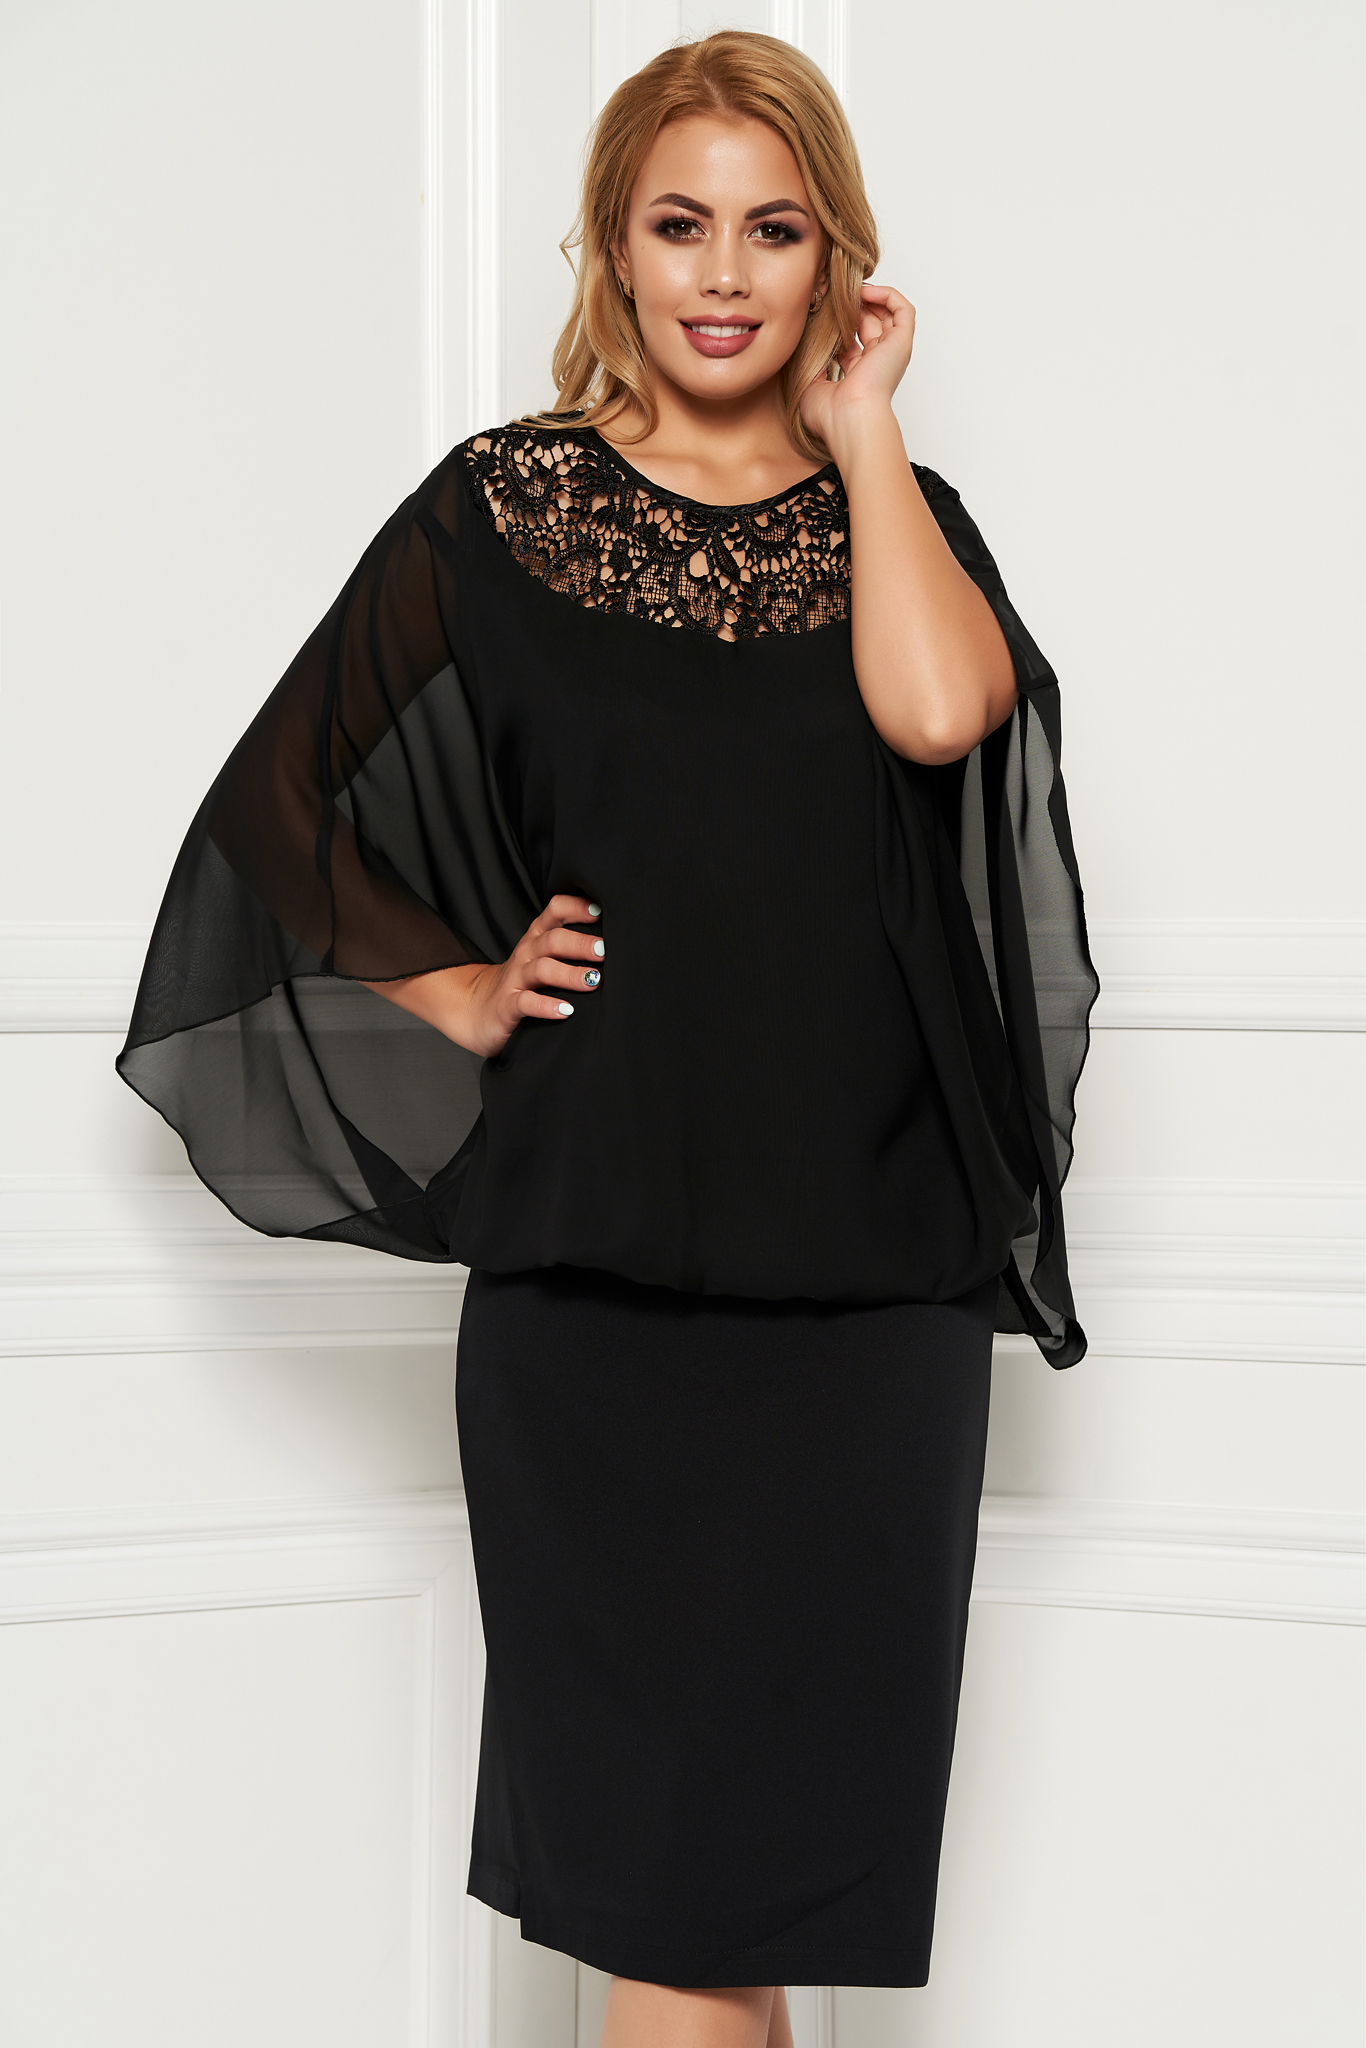 Black occasional midi dress non-flexible thin fabric voile overlay with lace details